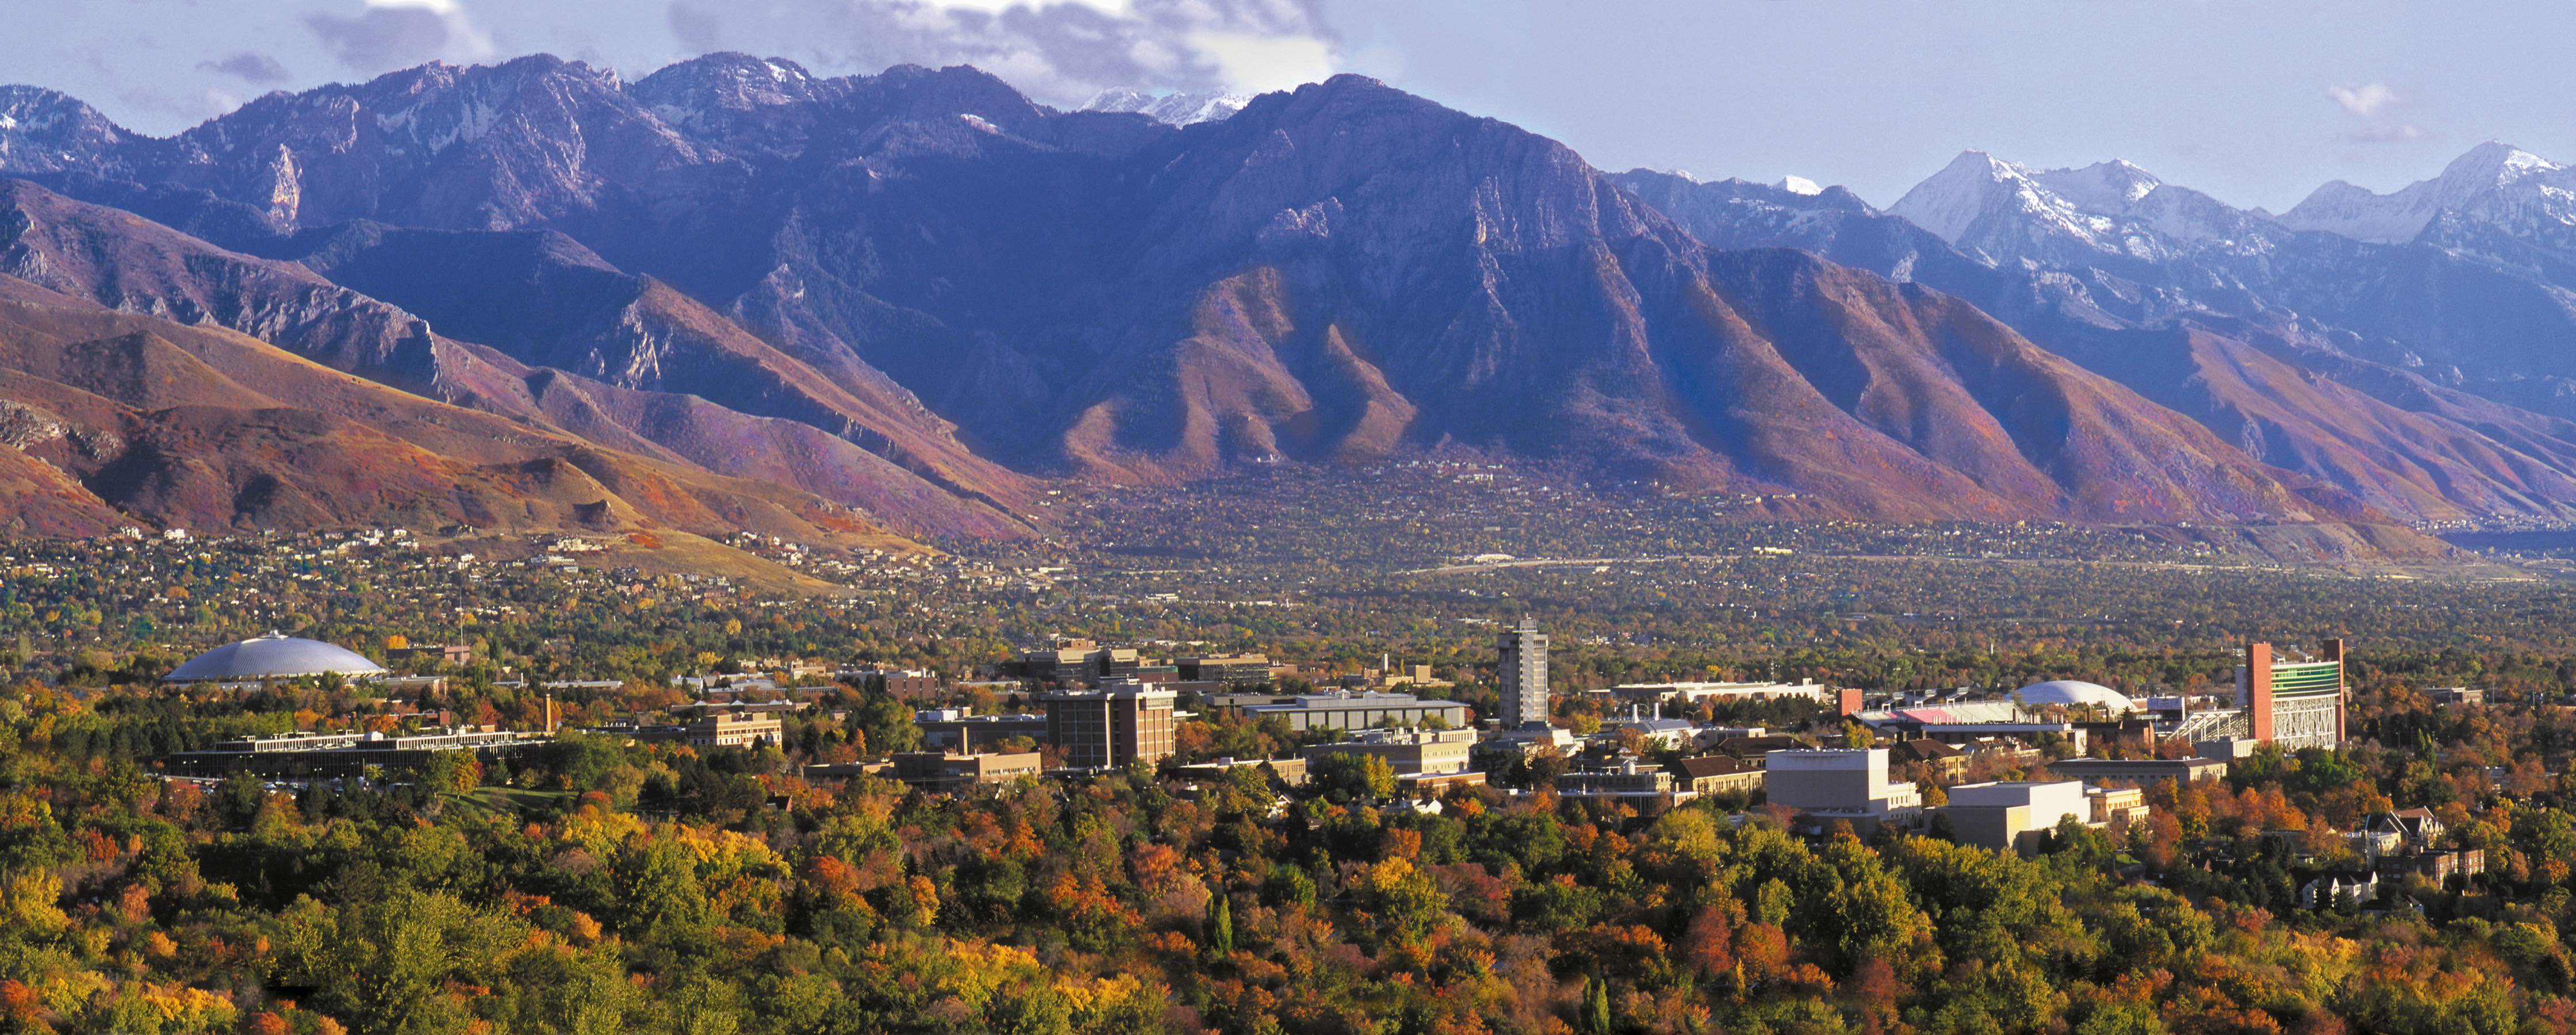 10 buildings to know at the university of utah oneclass blog